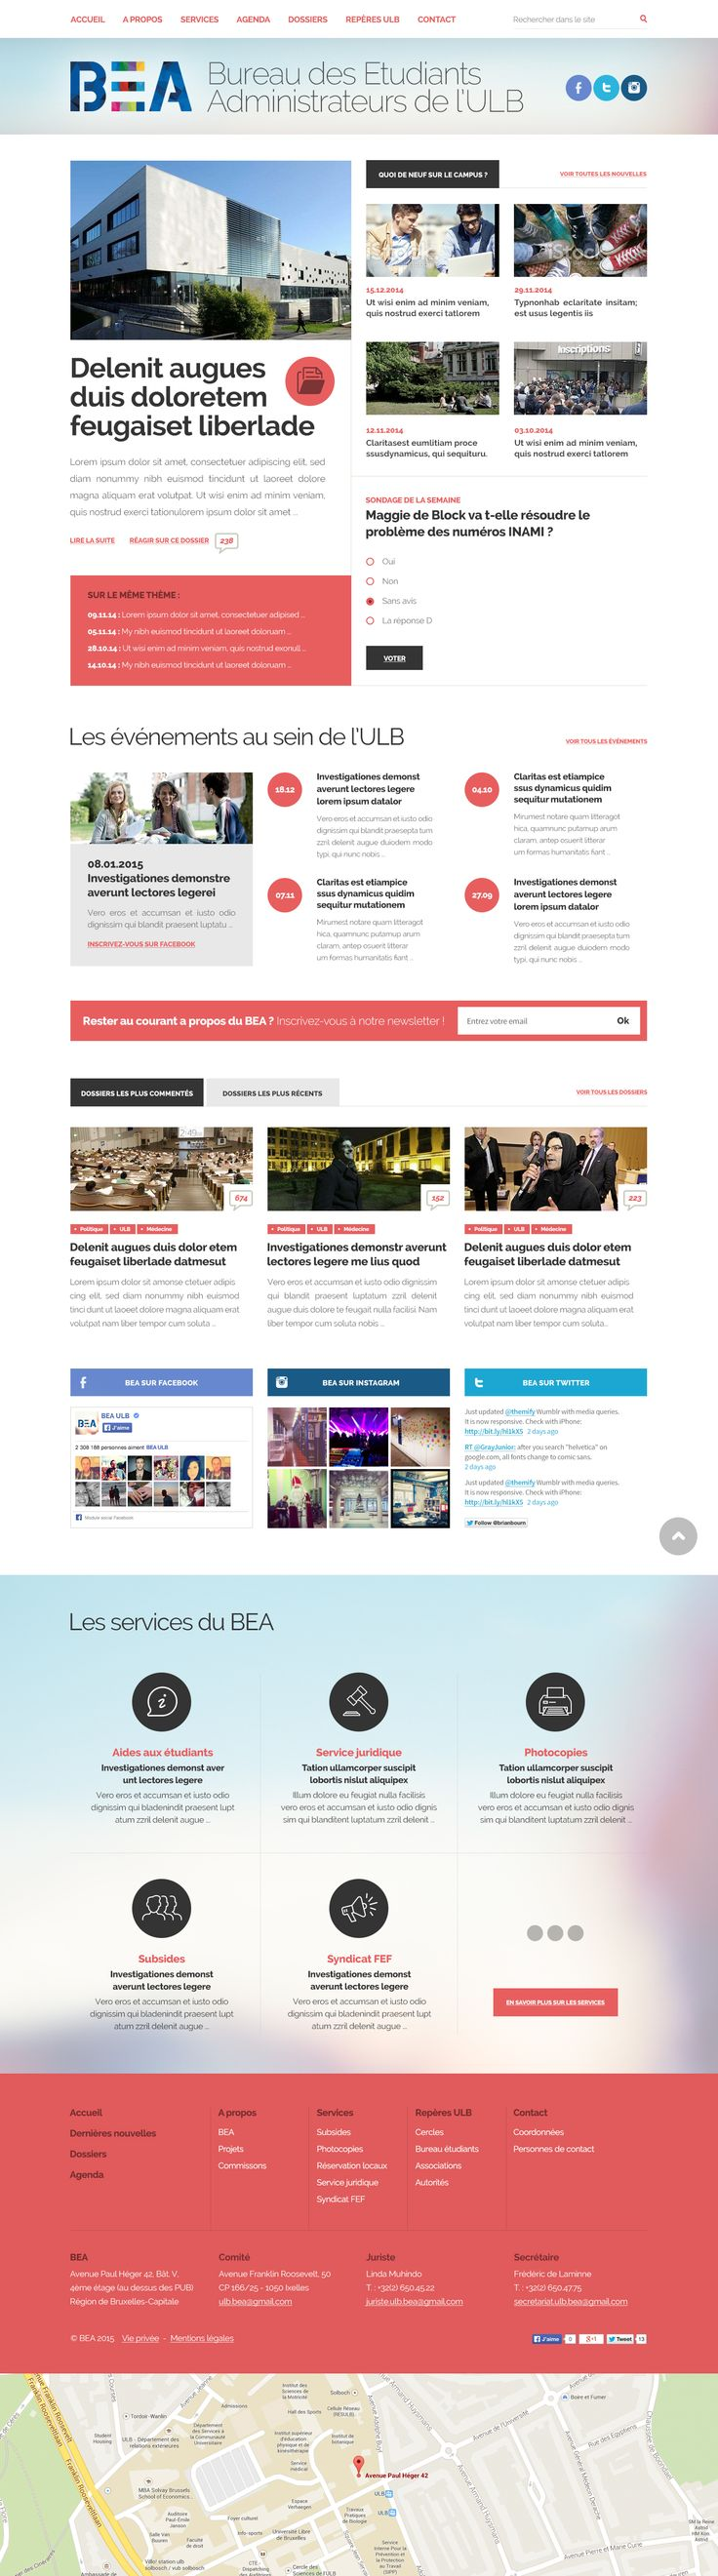 BEA Website #graphicdesign #webdesign #design #website #layout #responsive #uidesign #uxdesign #responsive #mirko #typography #mobileapplication #creativedesign MIRKO *L* Graphic Designer in Brussels - www.cerasuolo.org/